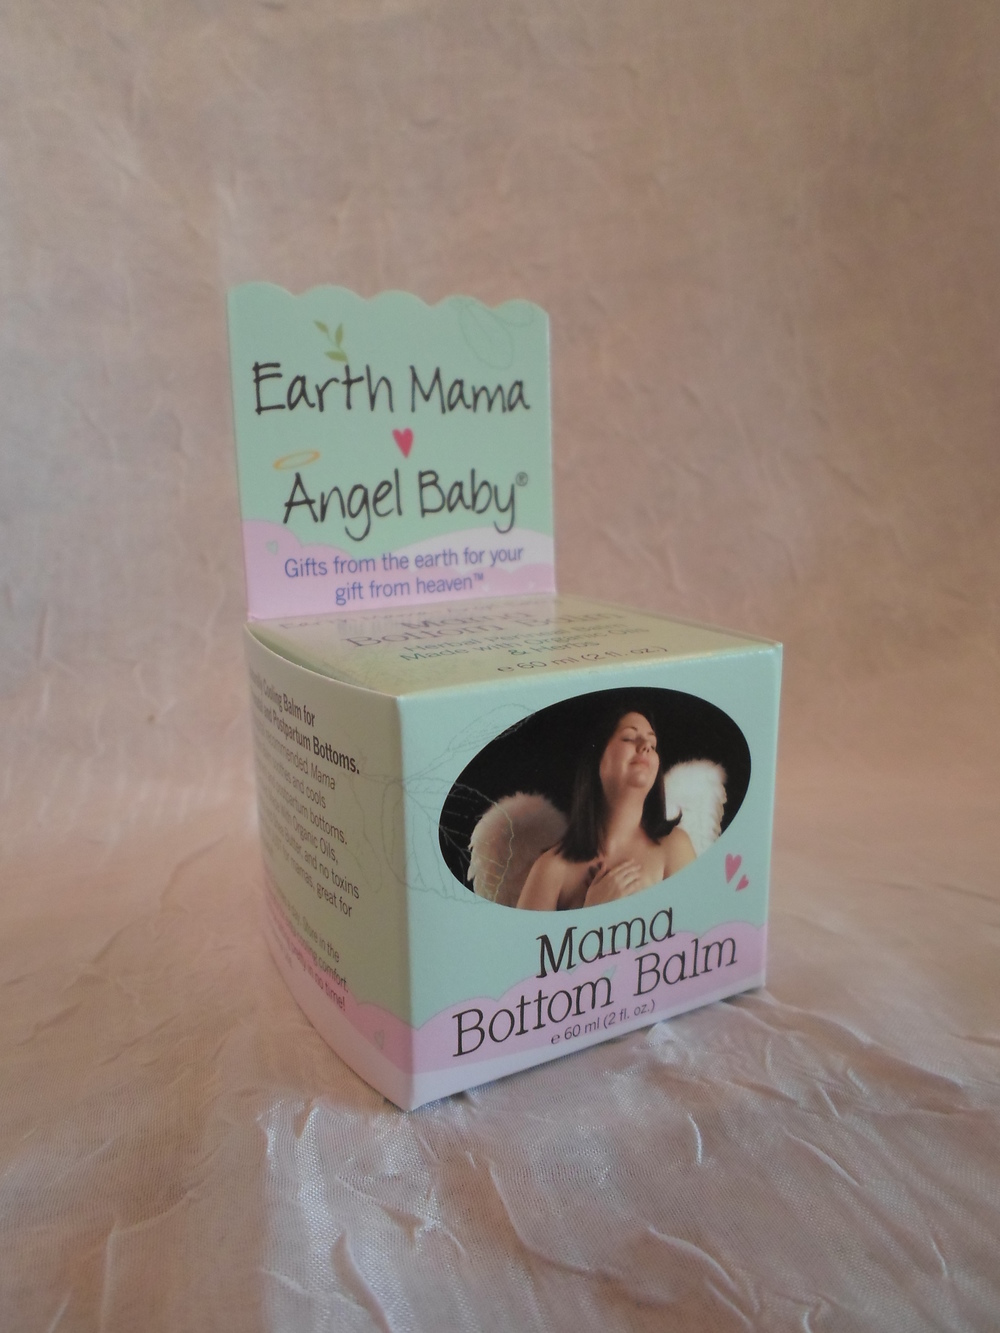 Earth Mama Angel Baby Bottom Balm for Mama $15.95 Wants 1 PURCHASED